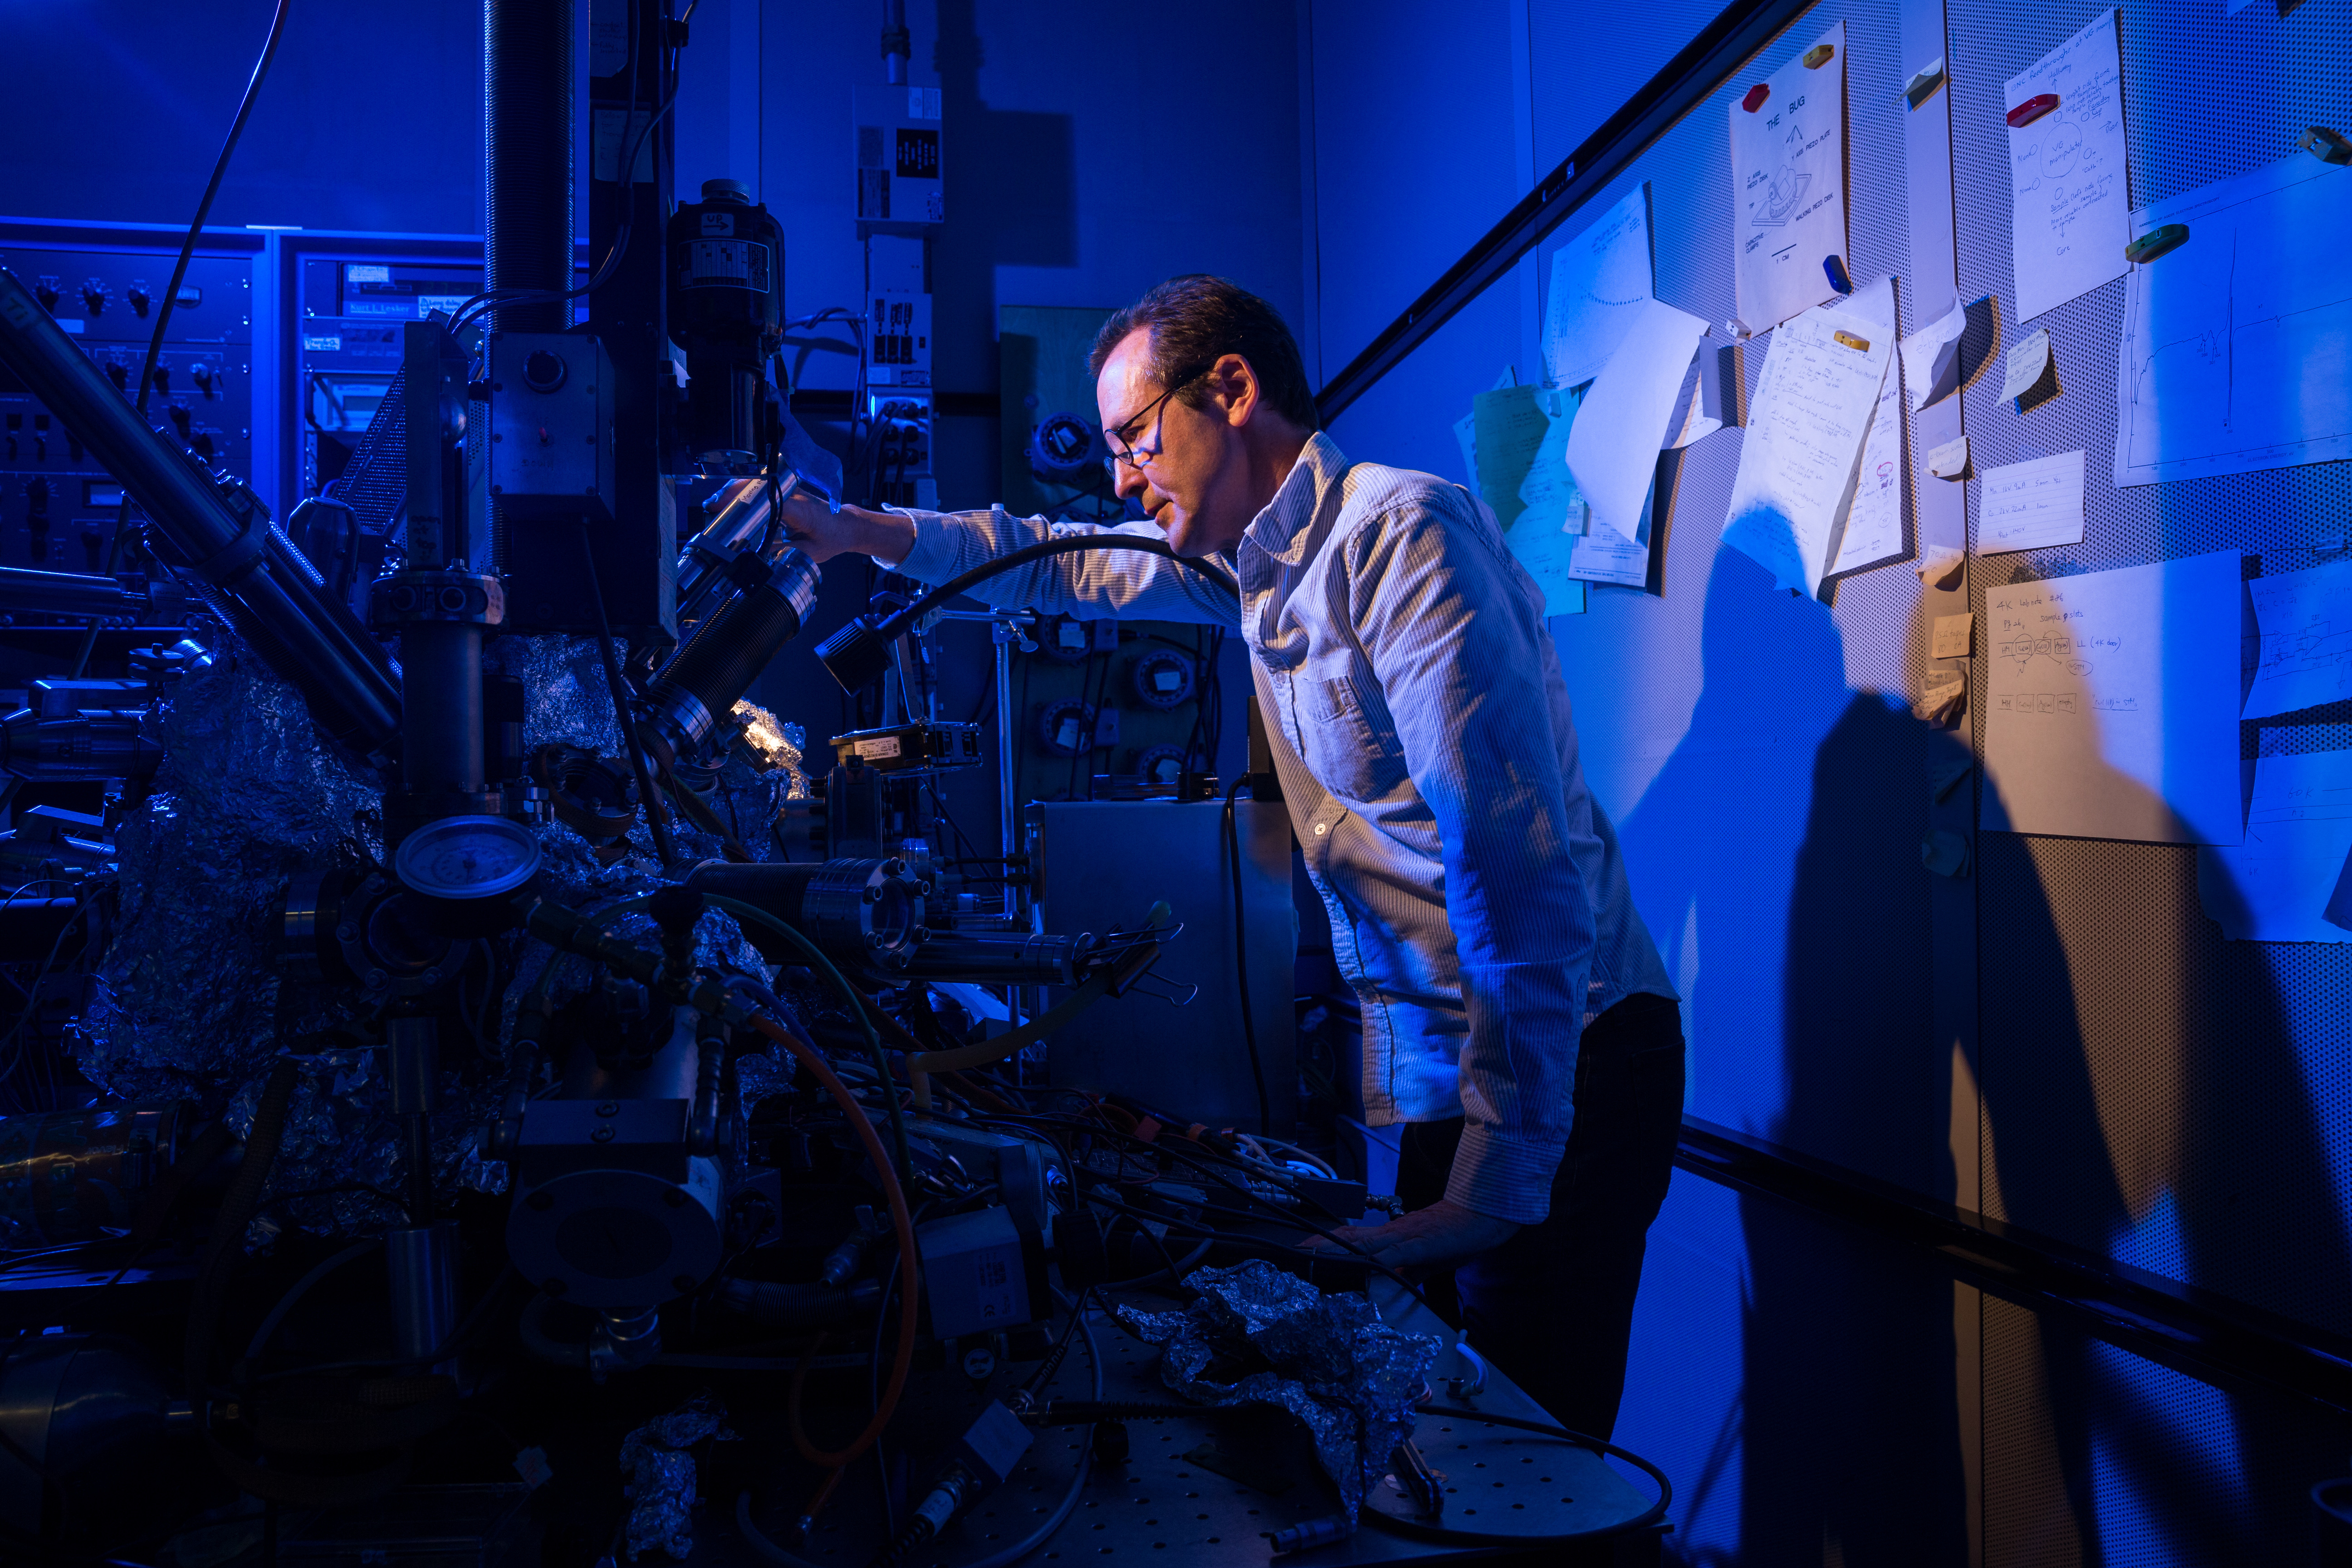 IBM researcher Chris Lutz stands by a microscope he and colleagues used to store a bit of data on a single atom at IBM Research's Almaden campus.